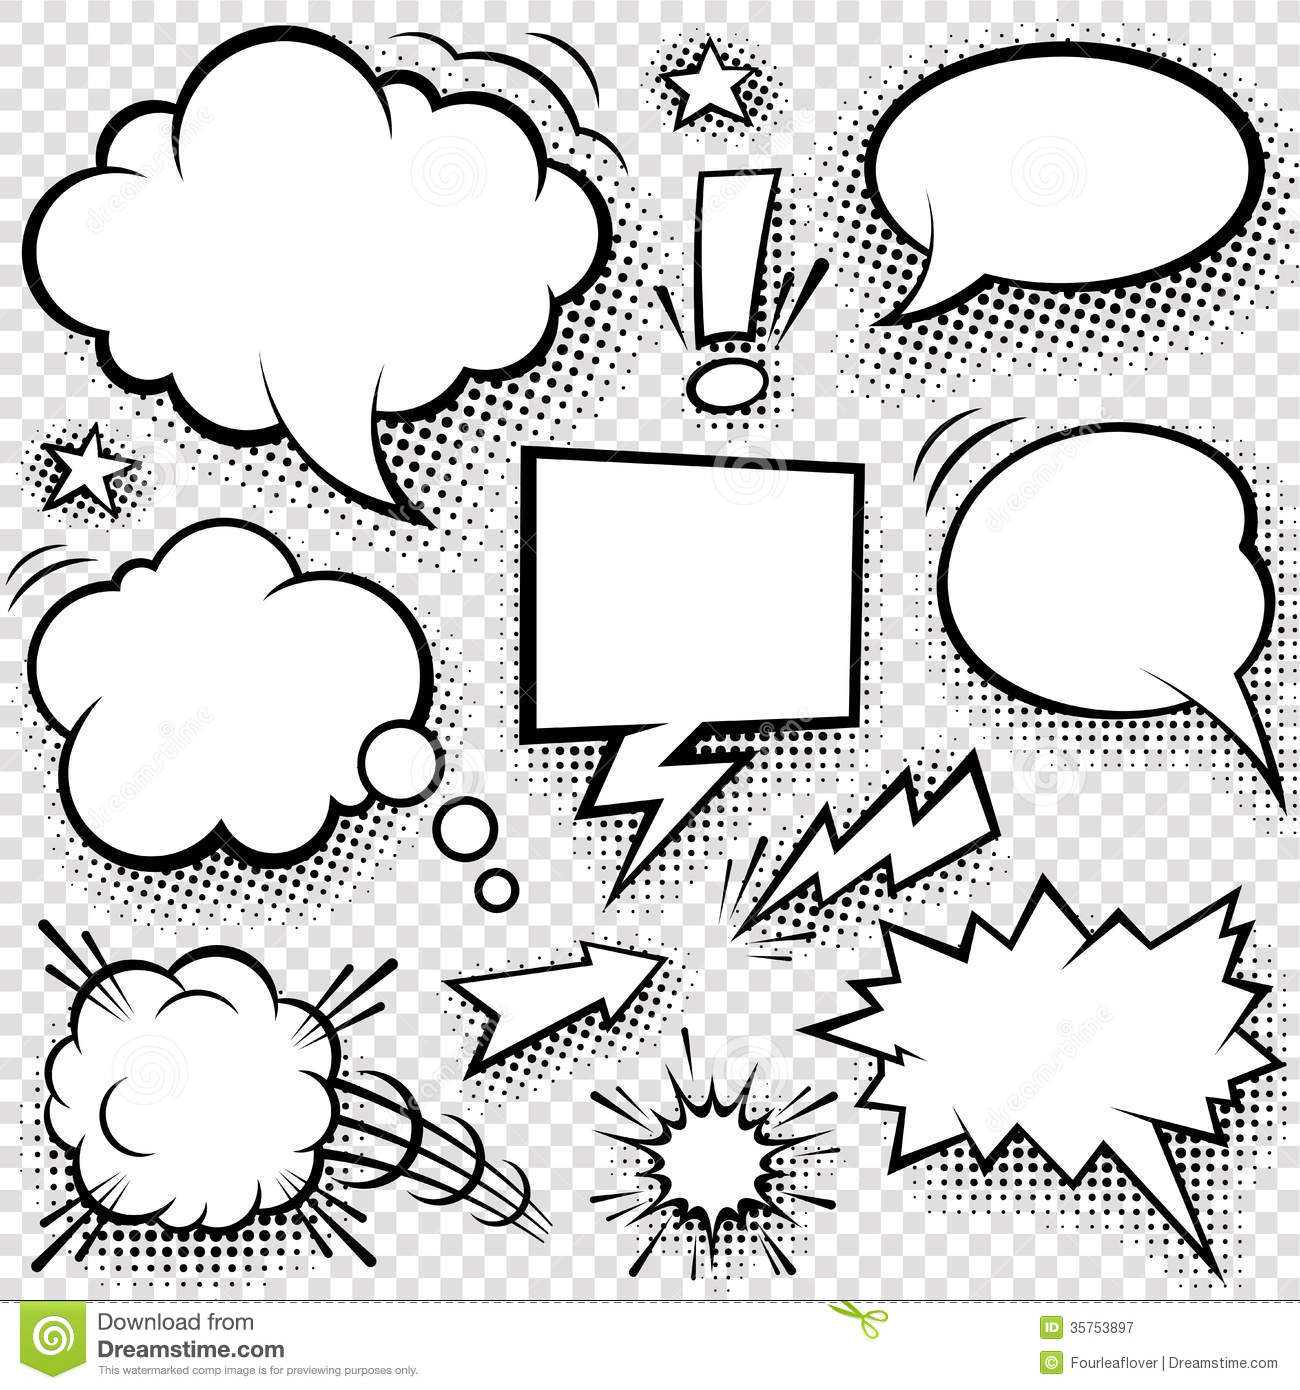 Comic bubbles and elements stock vector. Illustration of